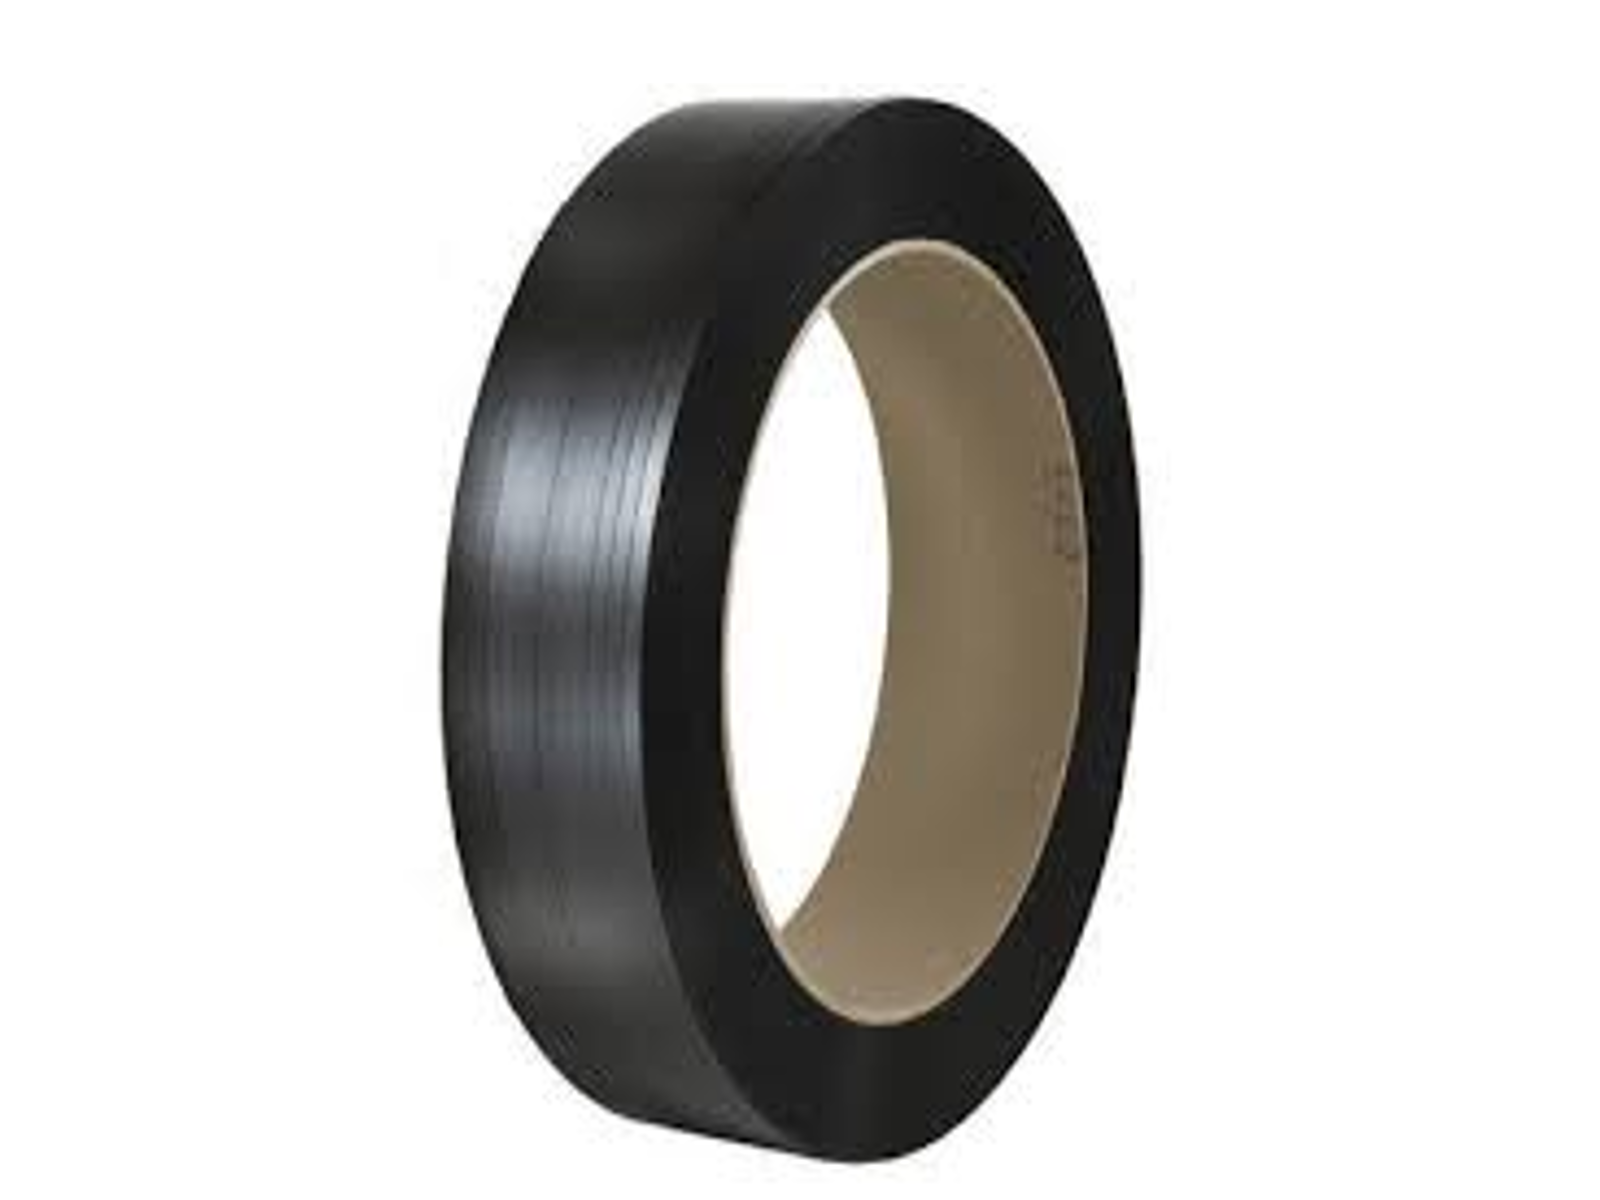 "POLYESTER PLASTIC STRAPPING 5/8"" .035 16X6 BLACK 4200'"